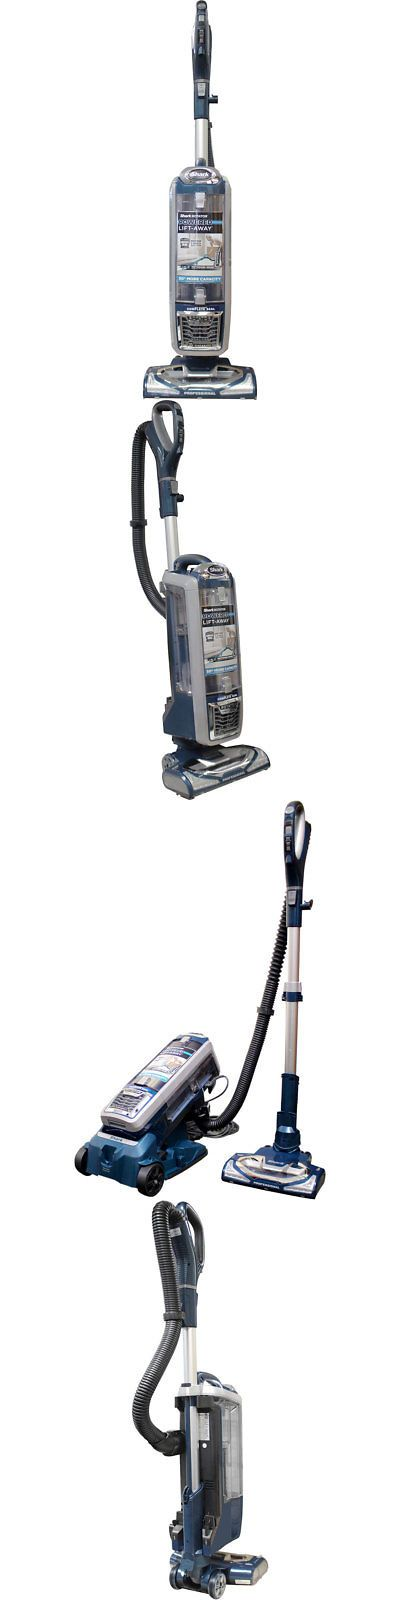 Vacuum Cleaners 20614: Shark Rotator Upright Canister Lift Away Bagless Vacuum With Specialty Tools -> BUY IT NOW ONLY: $279 on eBay!